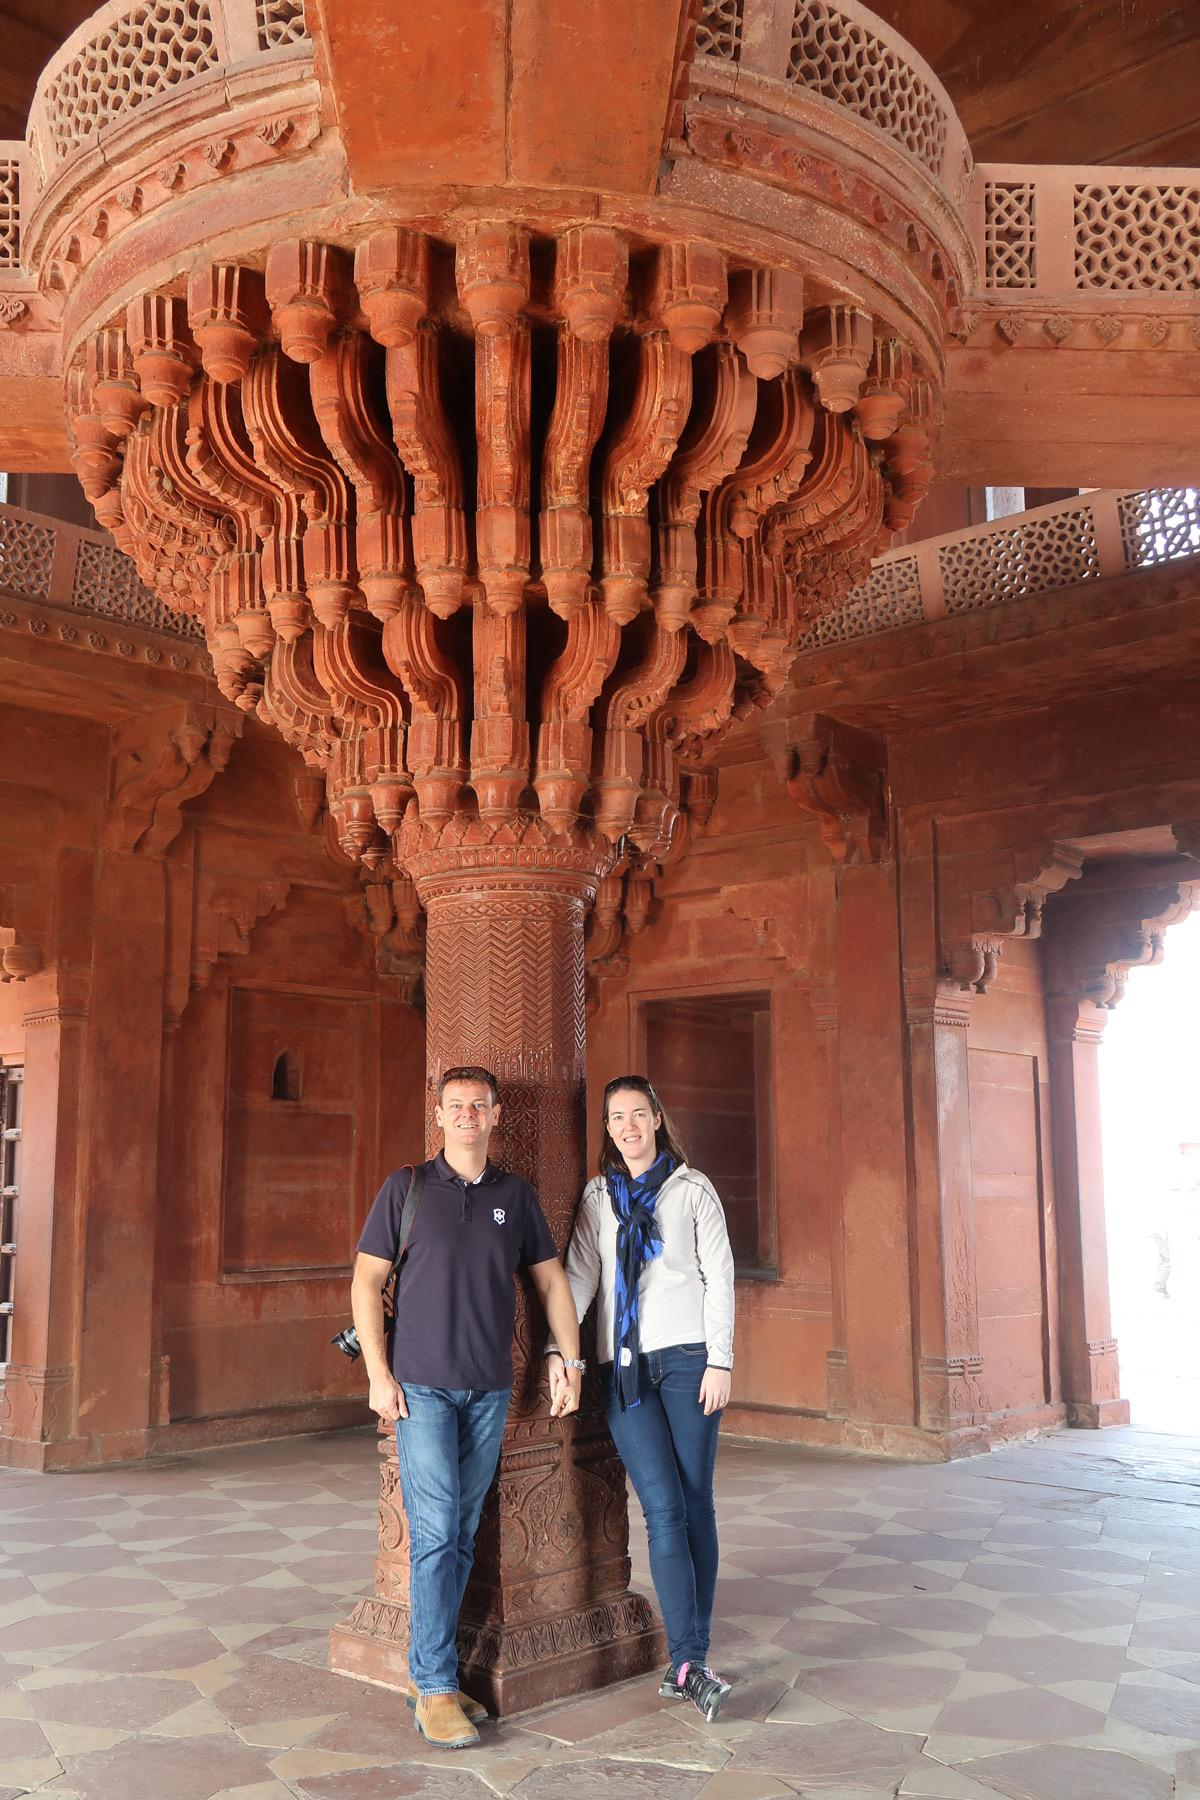 One day in Agra - Travel with Penelope and Parker